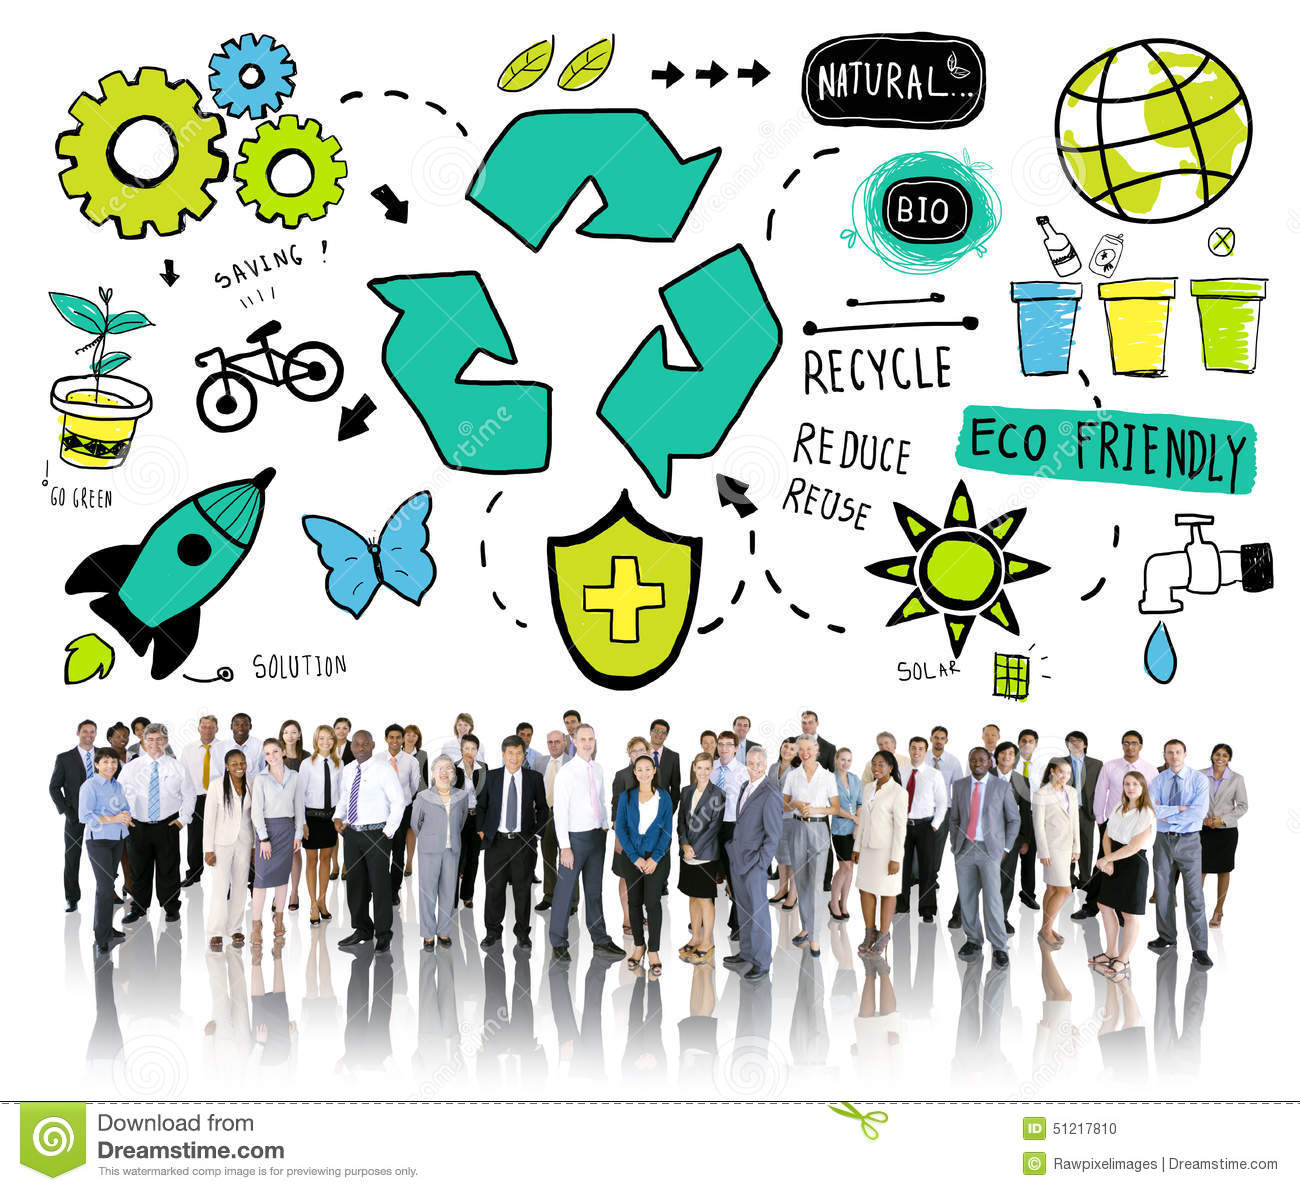 Eco Friendly Workers: Recycle Reuse Reduce Bio Eco Friendly Environment Concept